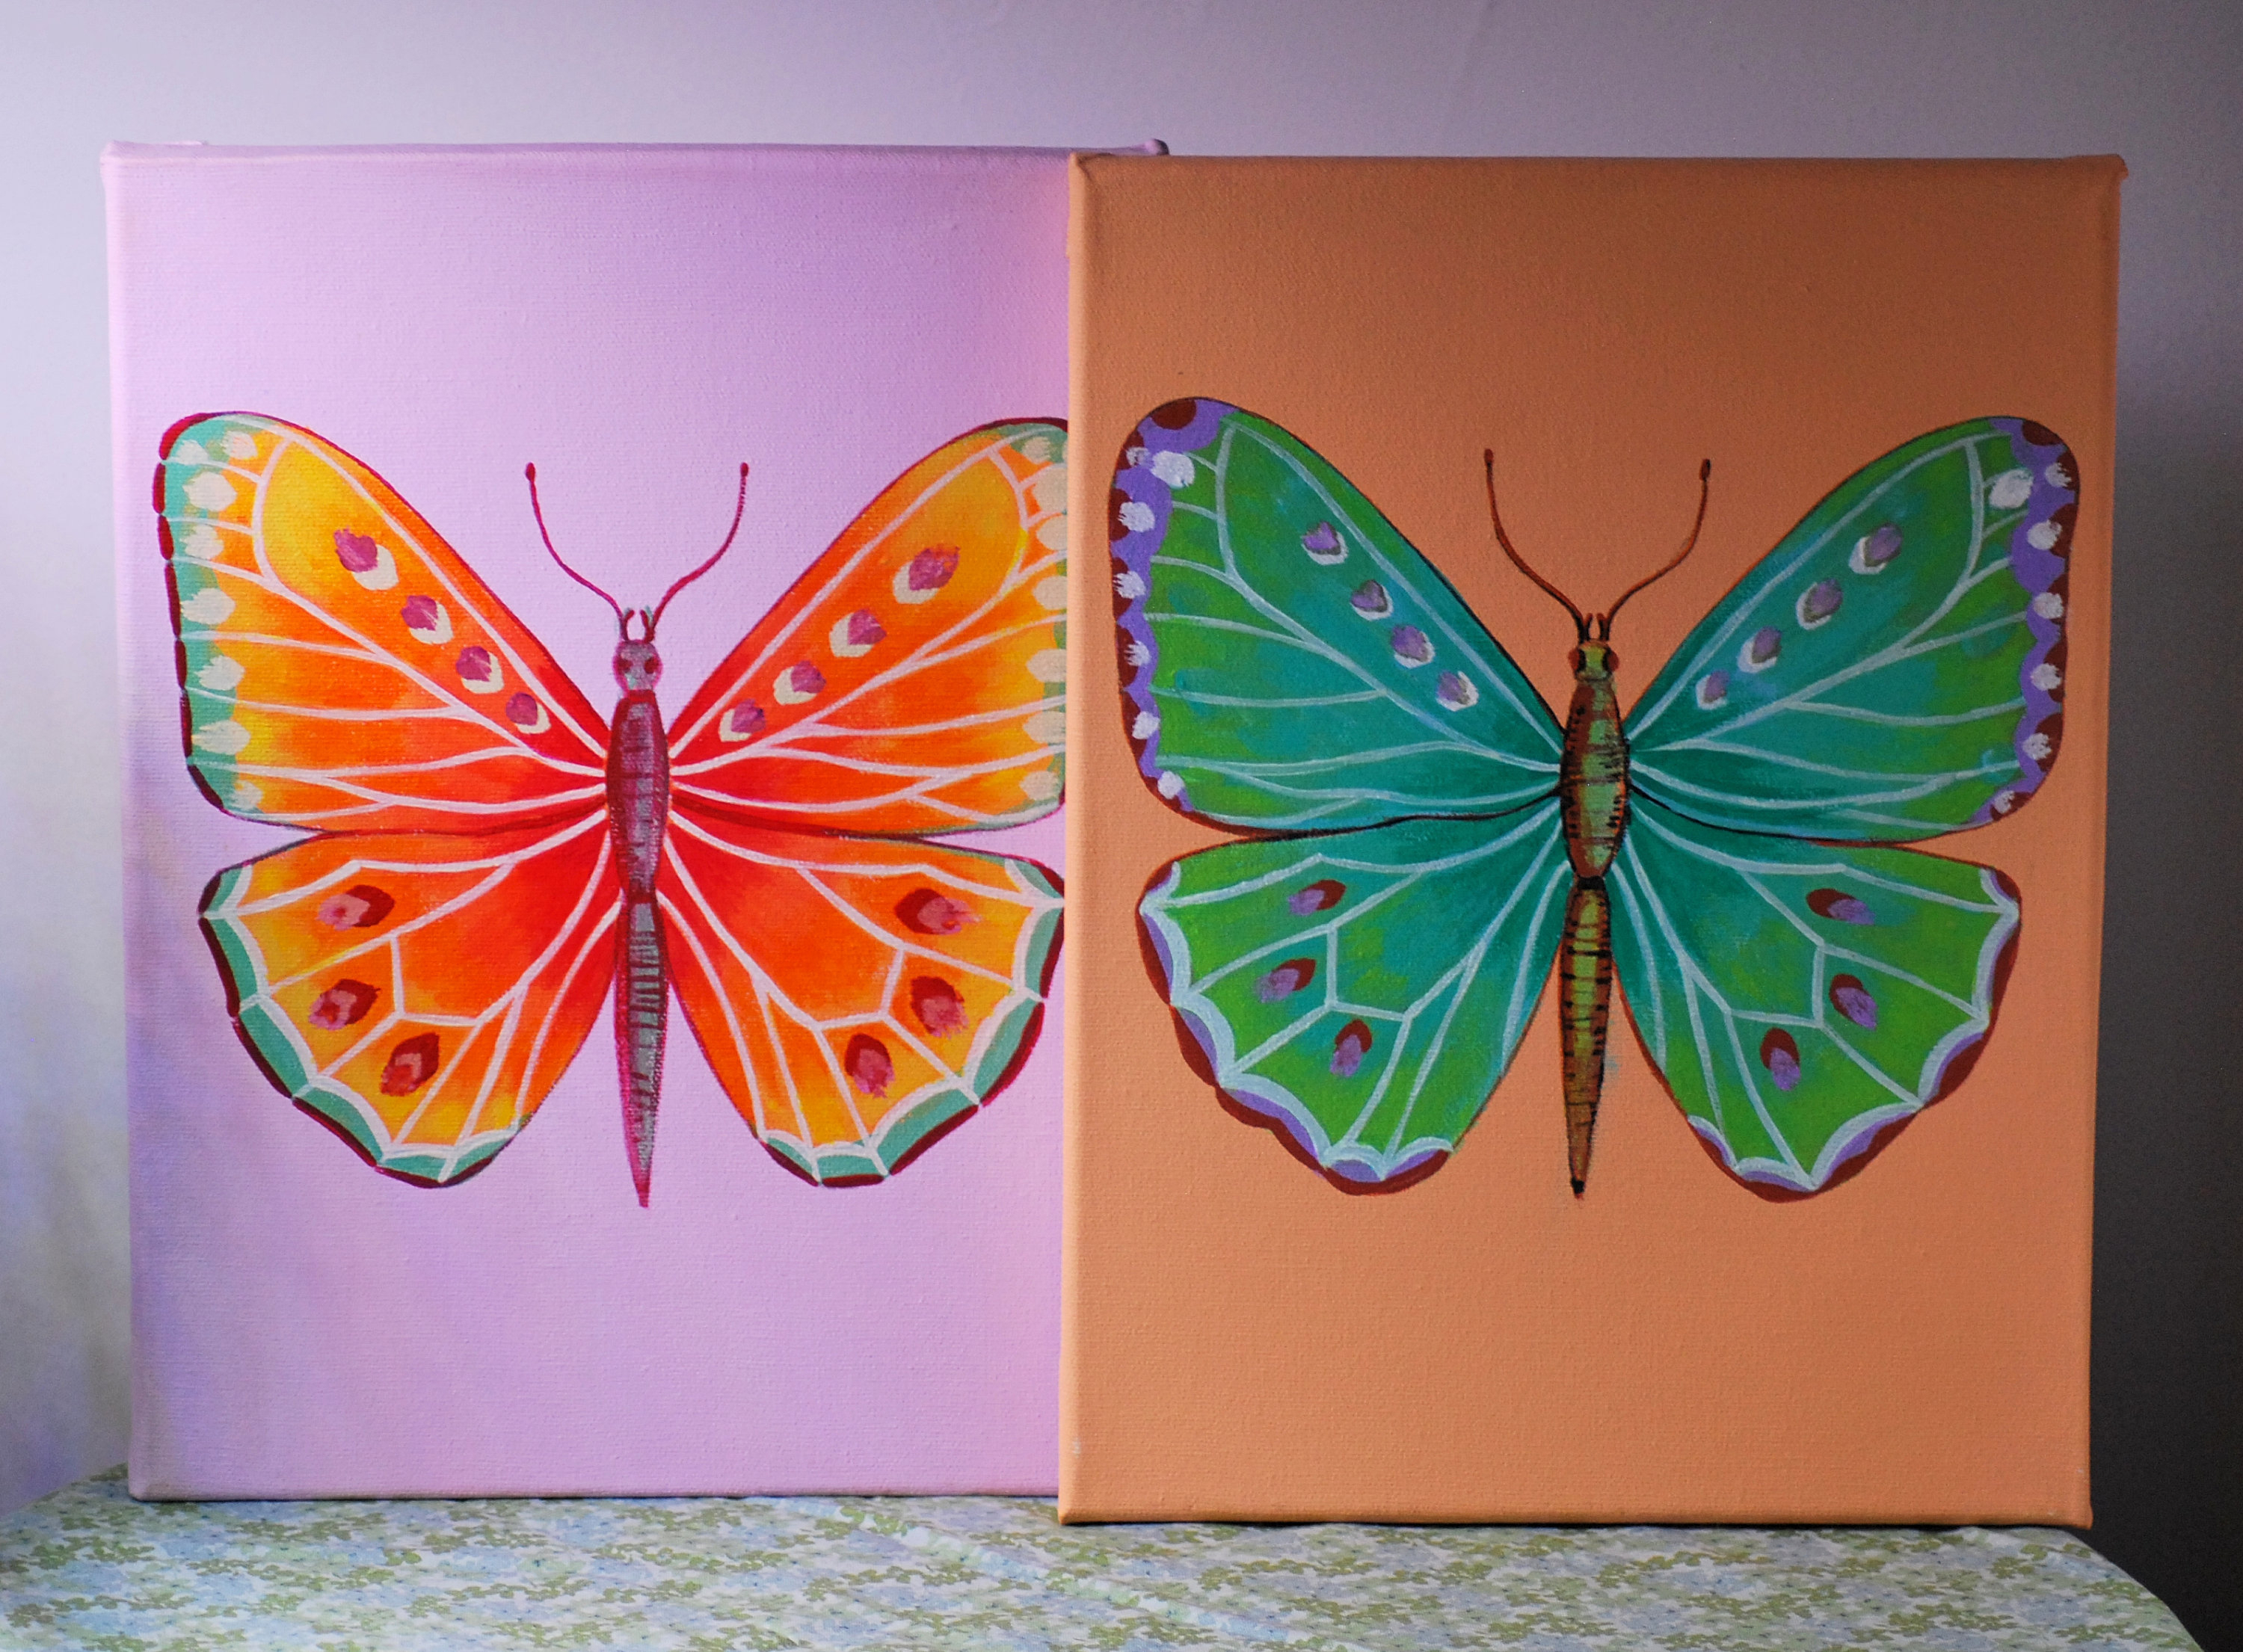 Original Multicolor Butterfly Painting Wall Art, Butterflies Bedroom Wall Decor, Butterflies Artwork Set Of 2 Canvas, Butterflies Set Canvas Inside 3 Piece Capri Butterfly Wall Decor Sets (View 29 of 30)